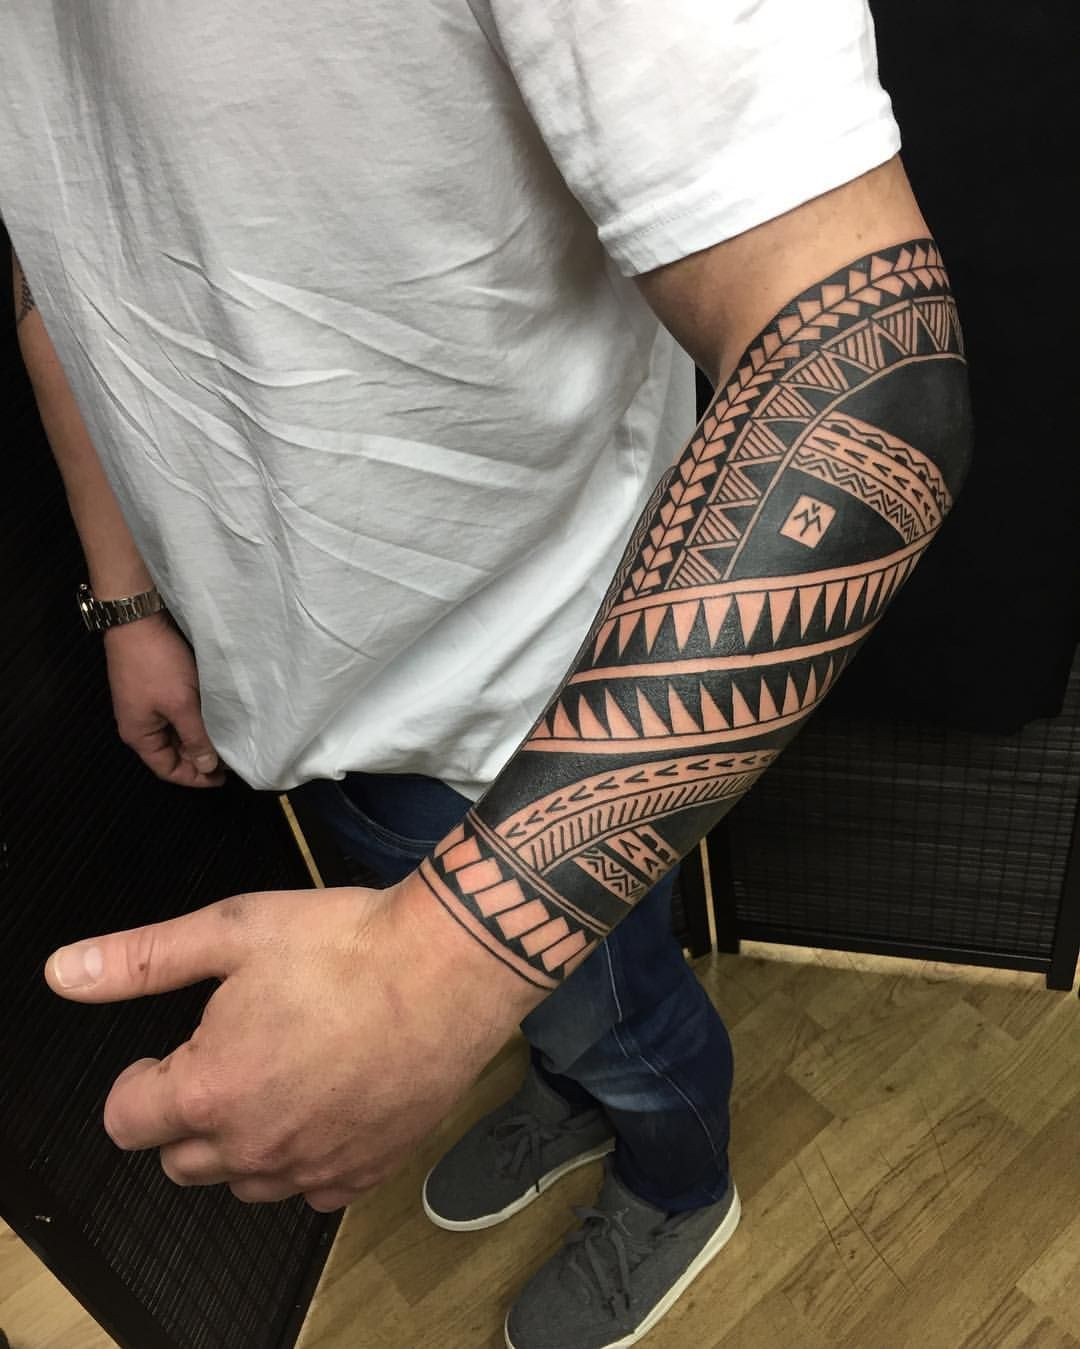 """Daniel Frye on Instagram: """"Polynesian tattoo done at @frithsttattoo yesterday. Thanks Ben for sitting all day! (It wraps) #tribaltataucollective #tribaltattoo…"""""""